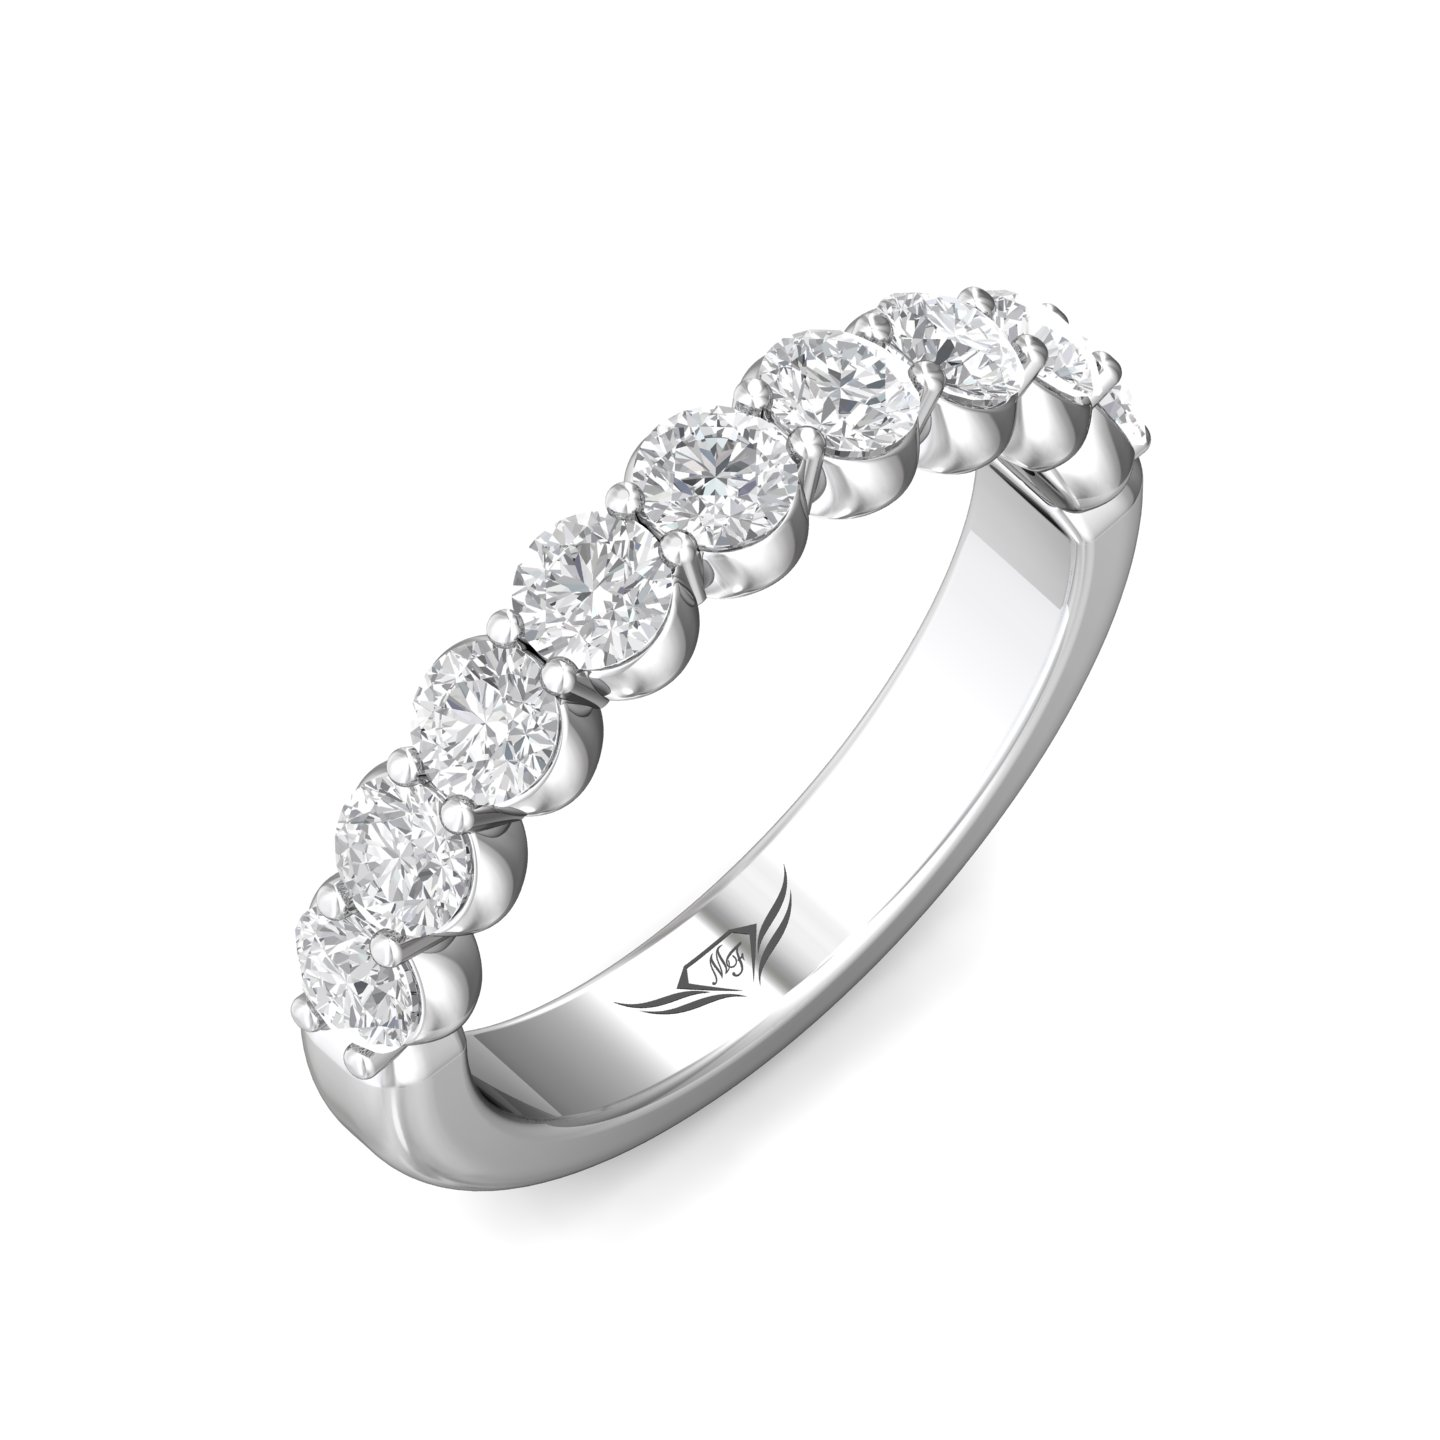 Diamond Wedding Band - Ladies platinum high polished diamond wedding band.  This classic band features 13 shared prong set round brilliant cut diamonds.  The diamonds are G-H color, VS2-SI1 clarity and weigh 0.55 ct.   This ring weighs 4.30 grams and is size 6.00.